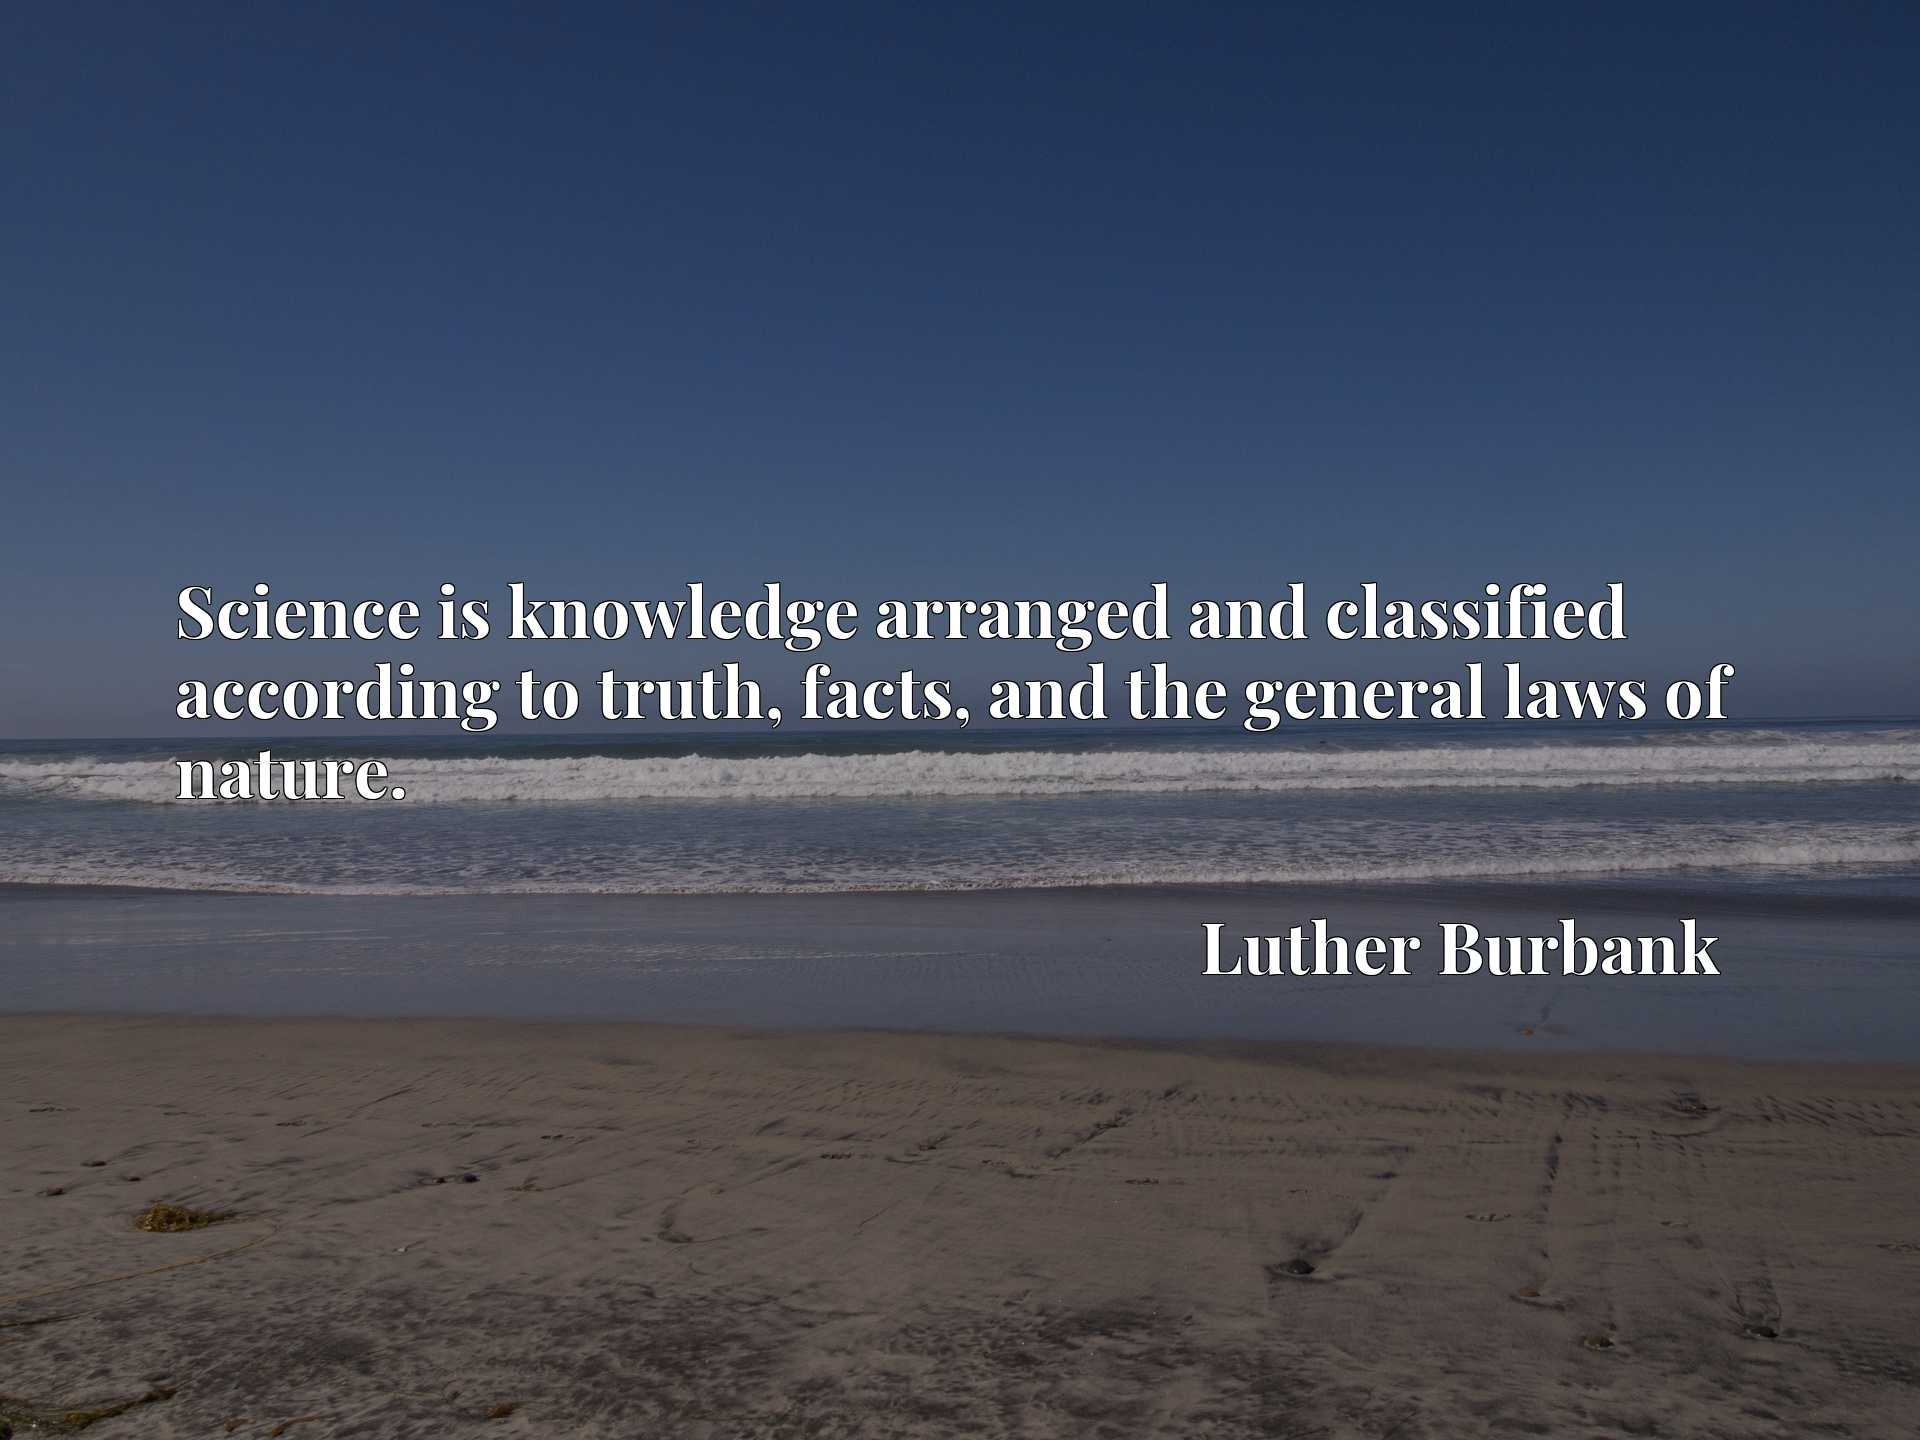 Quote Picture :Science is knowledge arranged and classified according to truth, facts, and the general laws of nature.